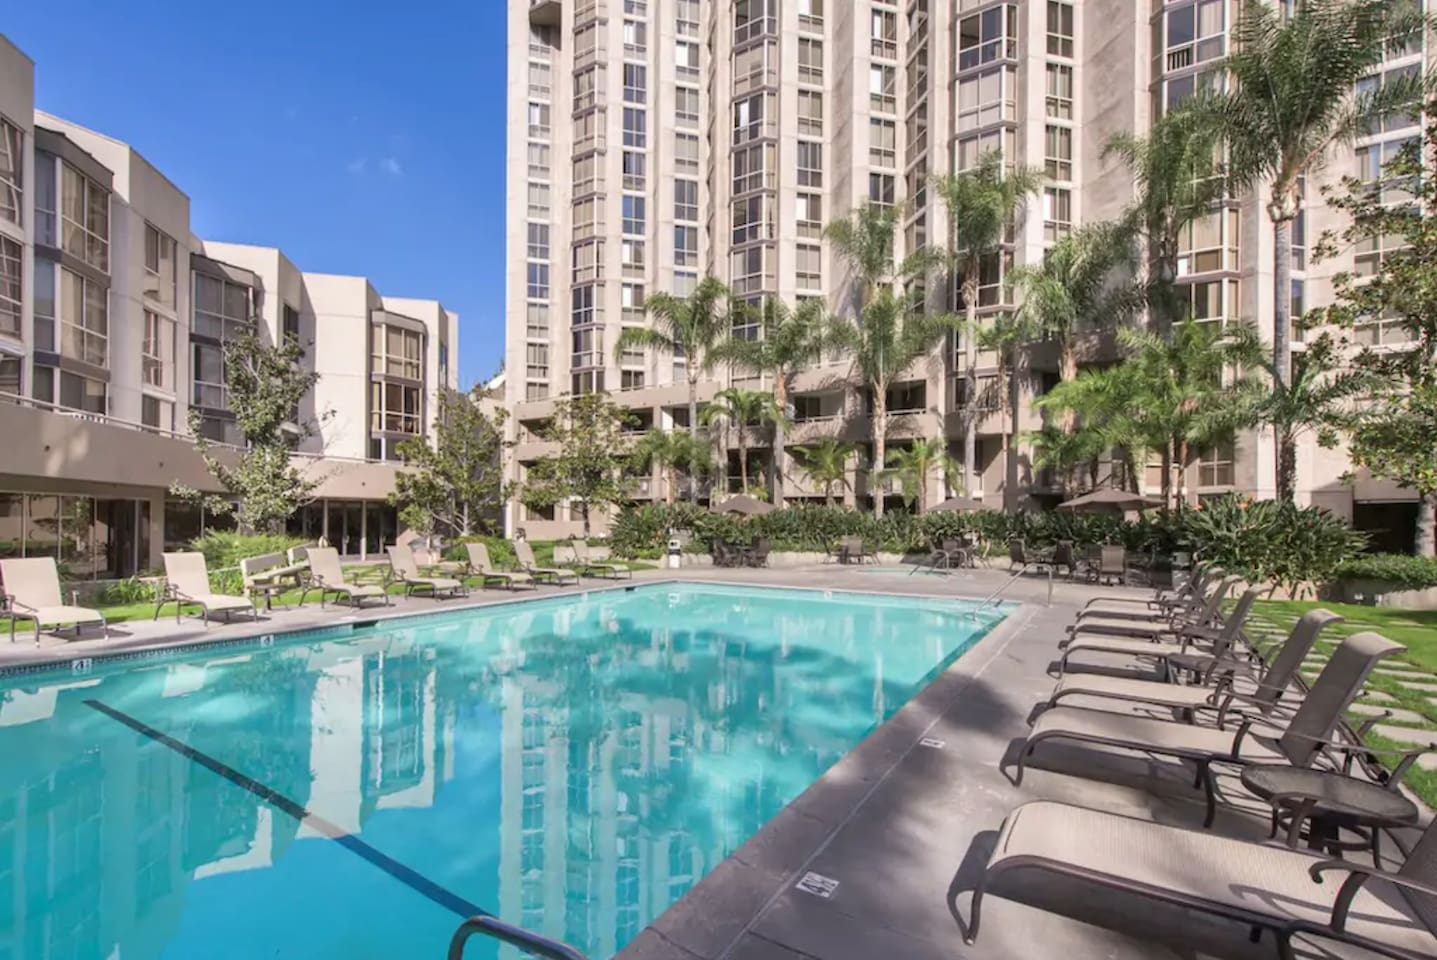 You will stay in a secure, luxury apartment building complex and enjoy the heated pool, gym, jacuzzi, sauna, BBQ and other amenties